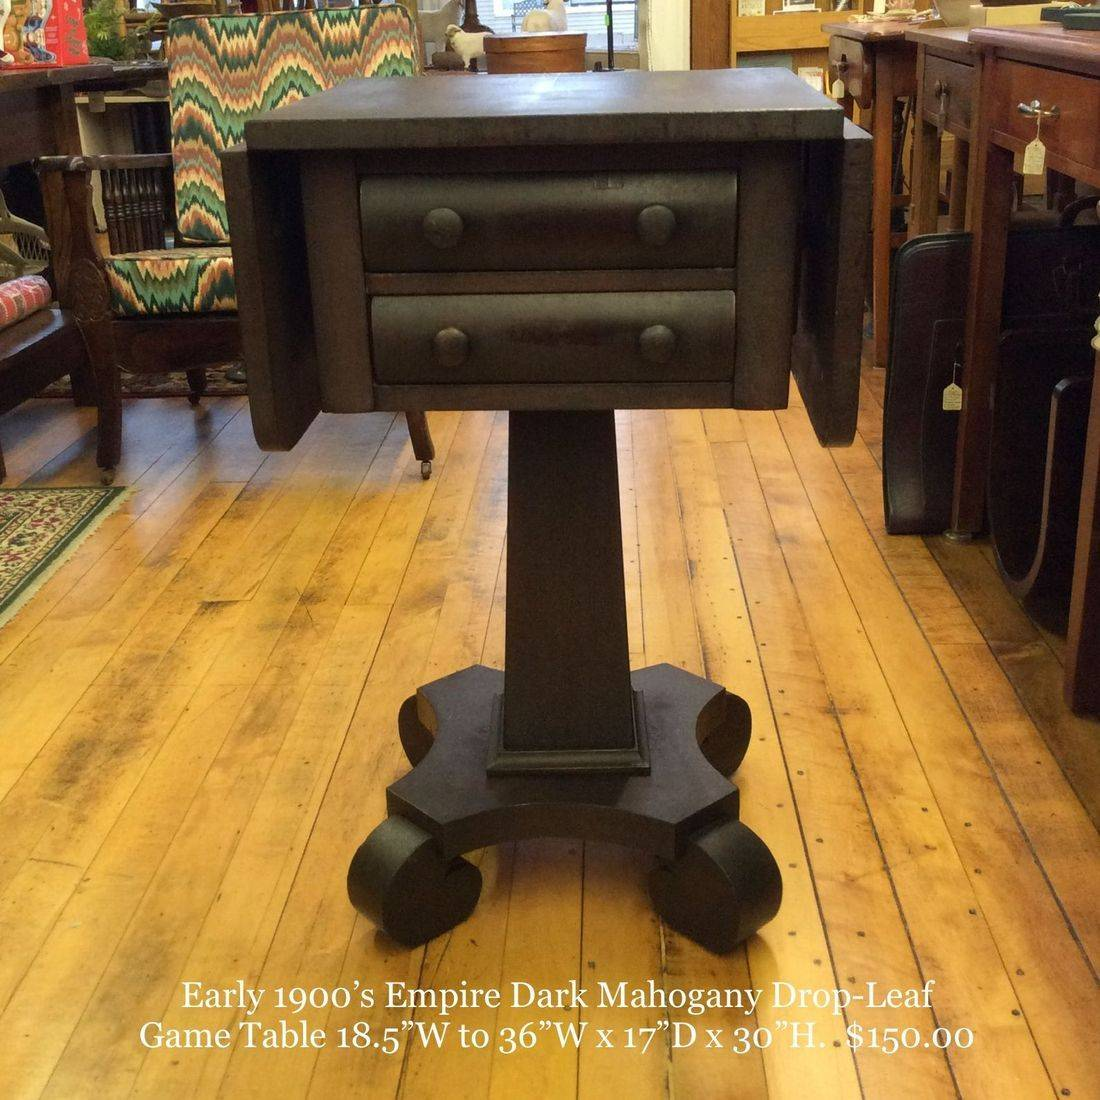 """Early 1900's Empire Dark Mahogany Drop-Leaf 2-Drawer Game Table  18-1/2""""W to 36""""W x 17-1/8""""D x 30""""H.  $150.00"""